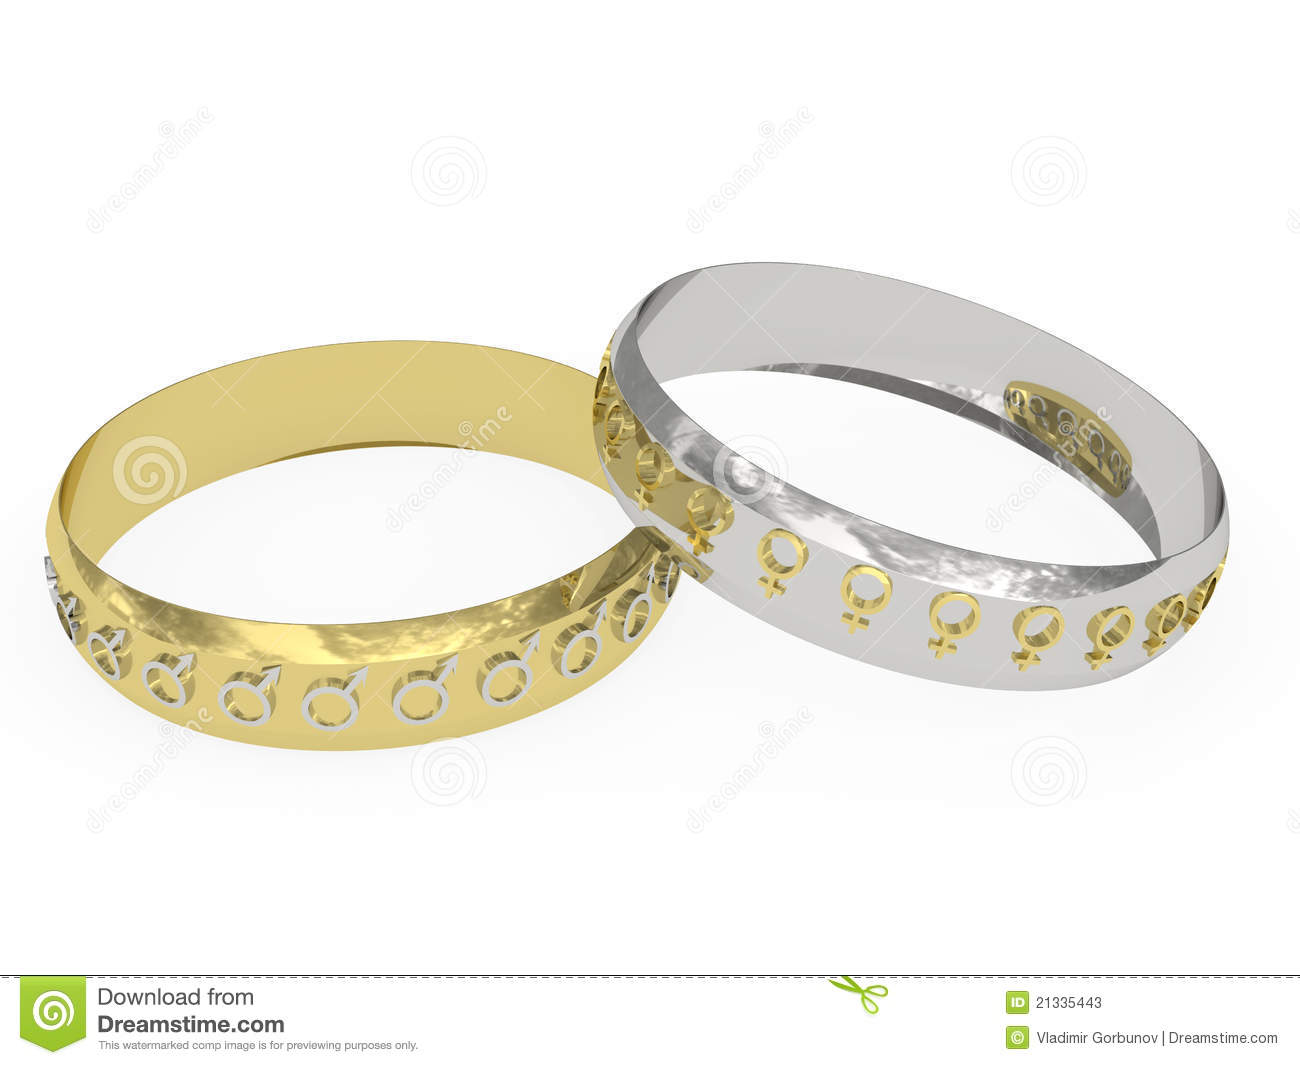 Wedding Rings For Male And Female Wedding Rings With Male And Female Symbols Stock Photos